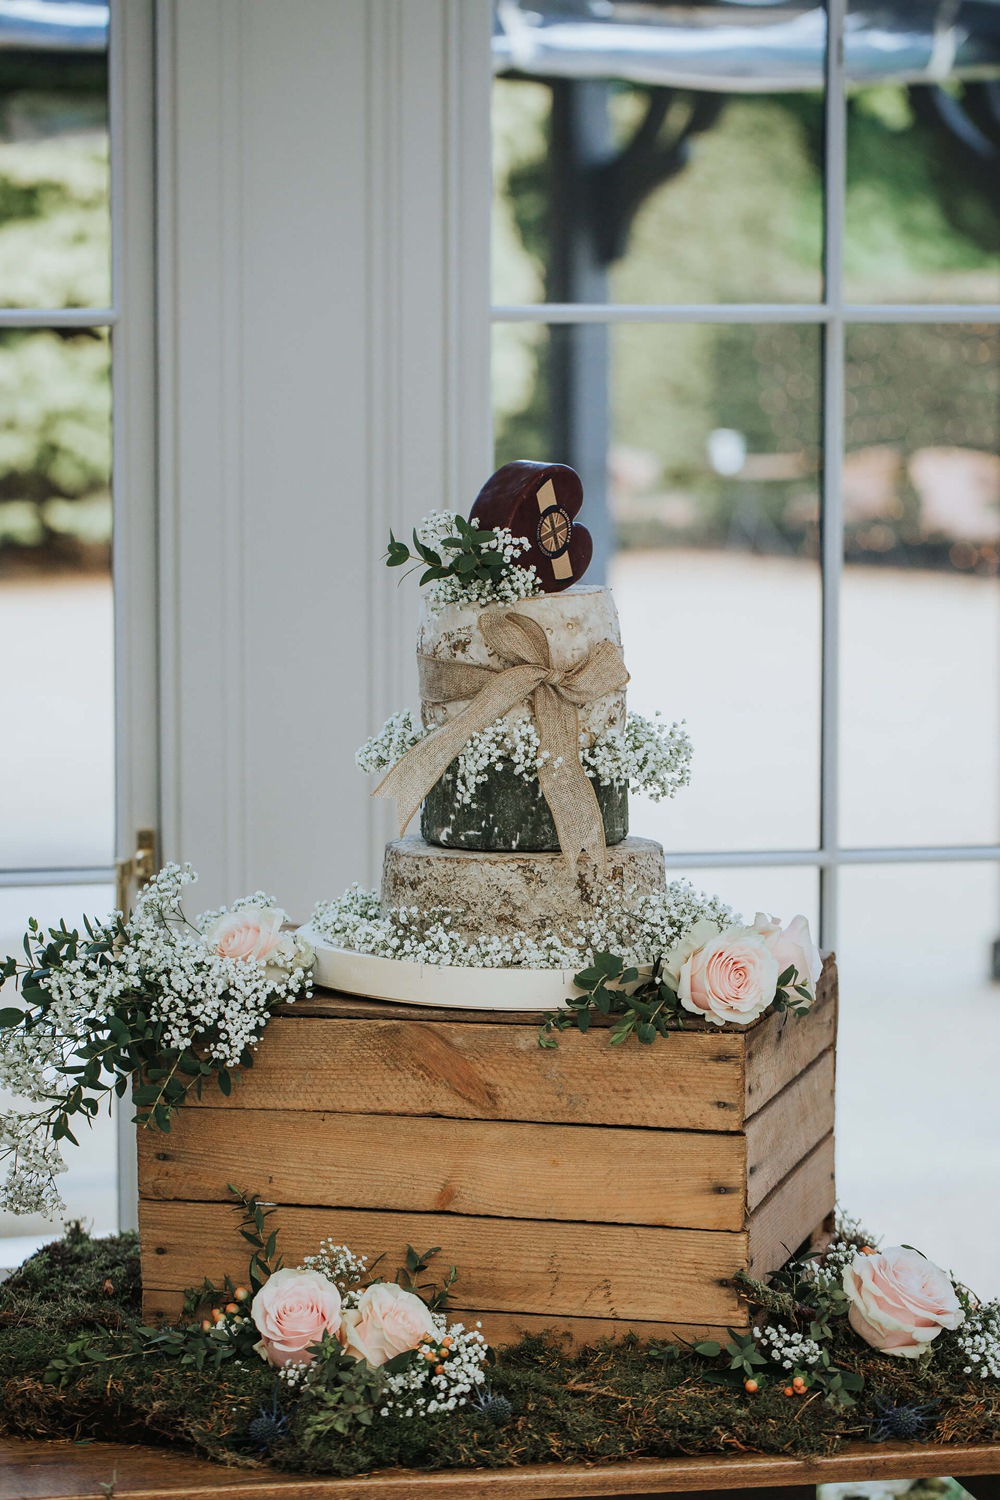 Cheese Tower Stack Cake Heart Flowers Wooden Box Crate Stand Hayne House Wedding Olegs Samsonovs Photography